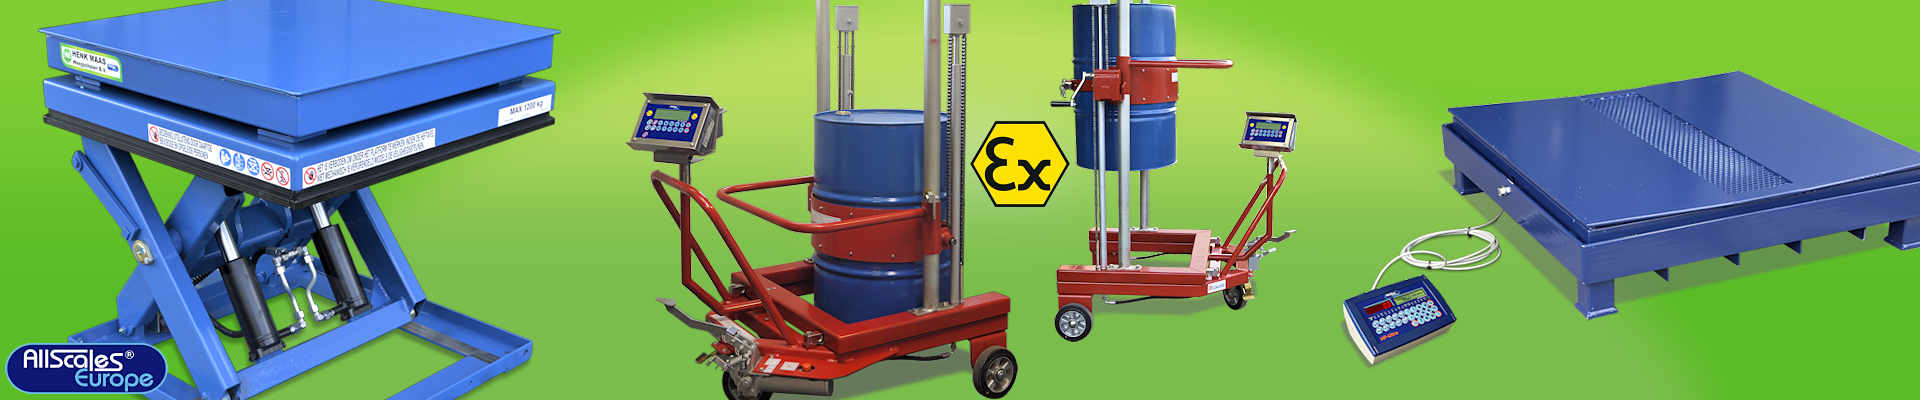 Slider 7 tailor made weighing equipment